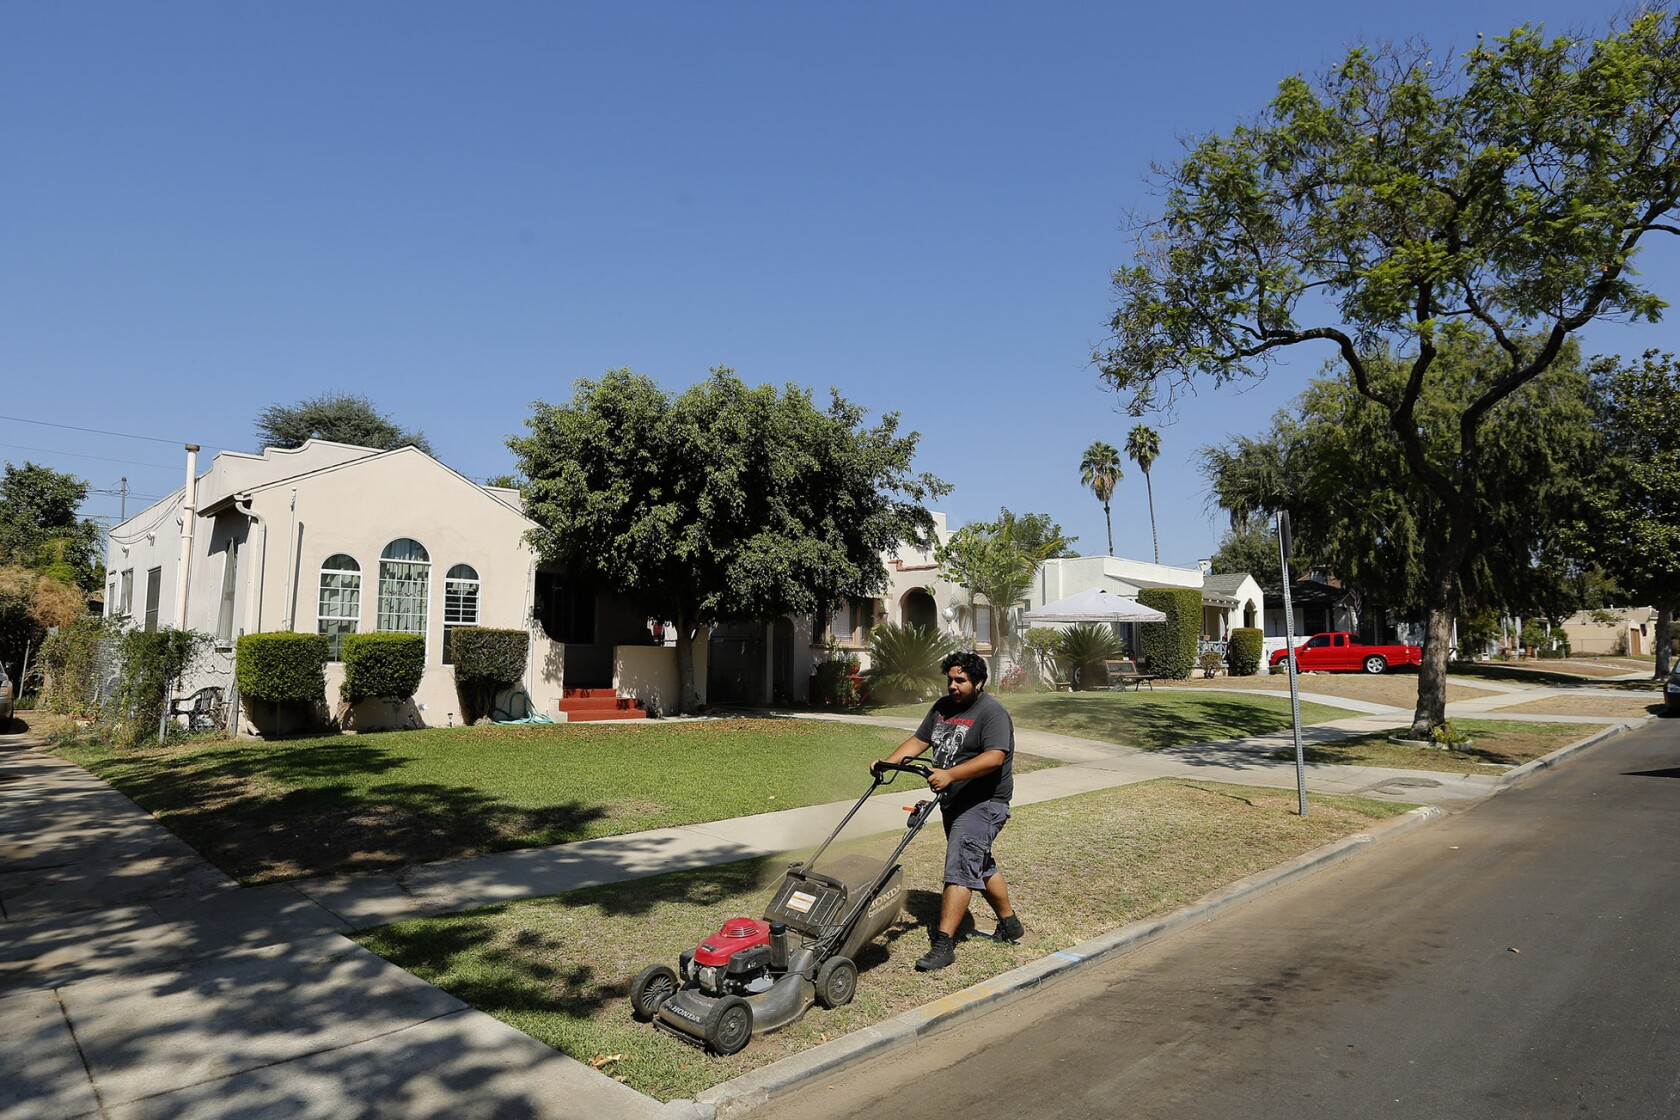 Tenants worry as Caltrans prepares to sell homes along 710 Freeway